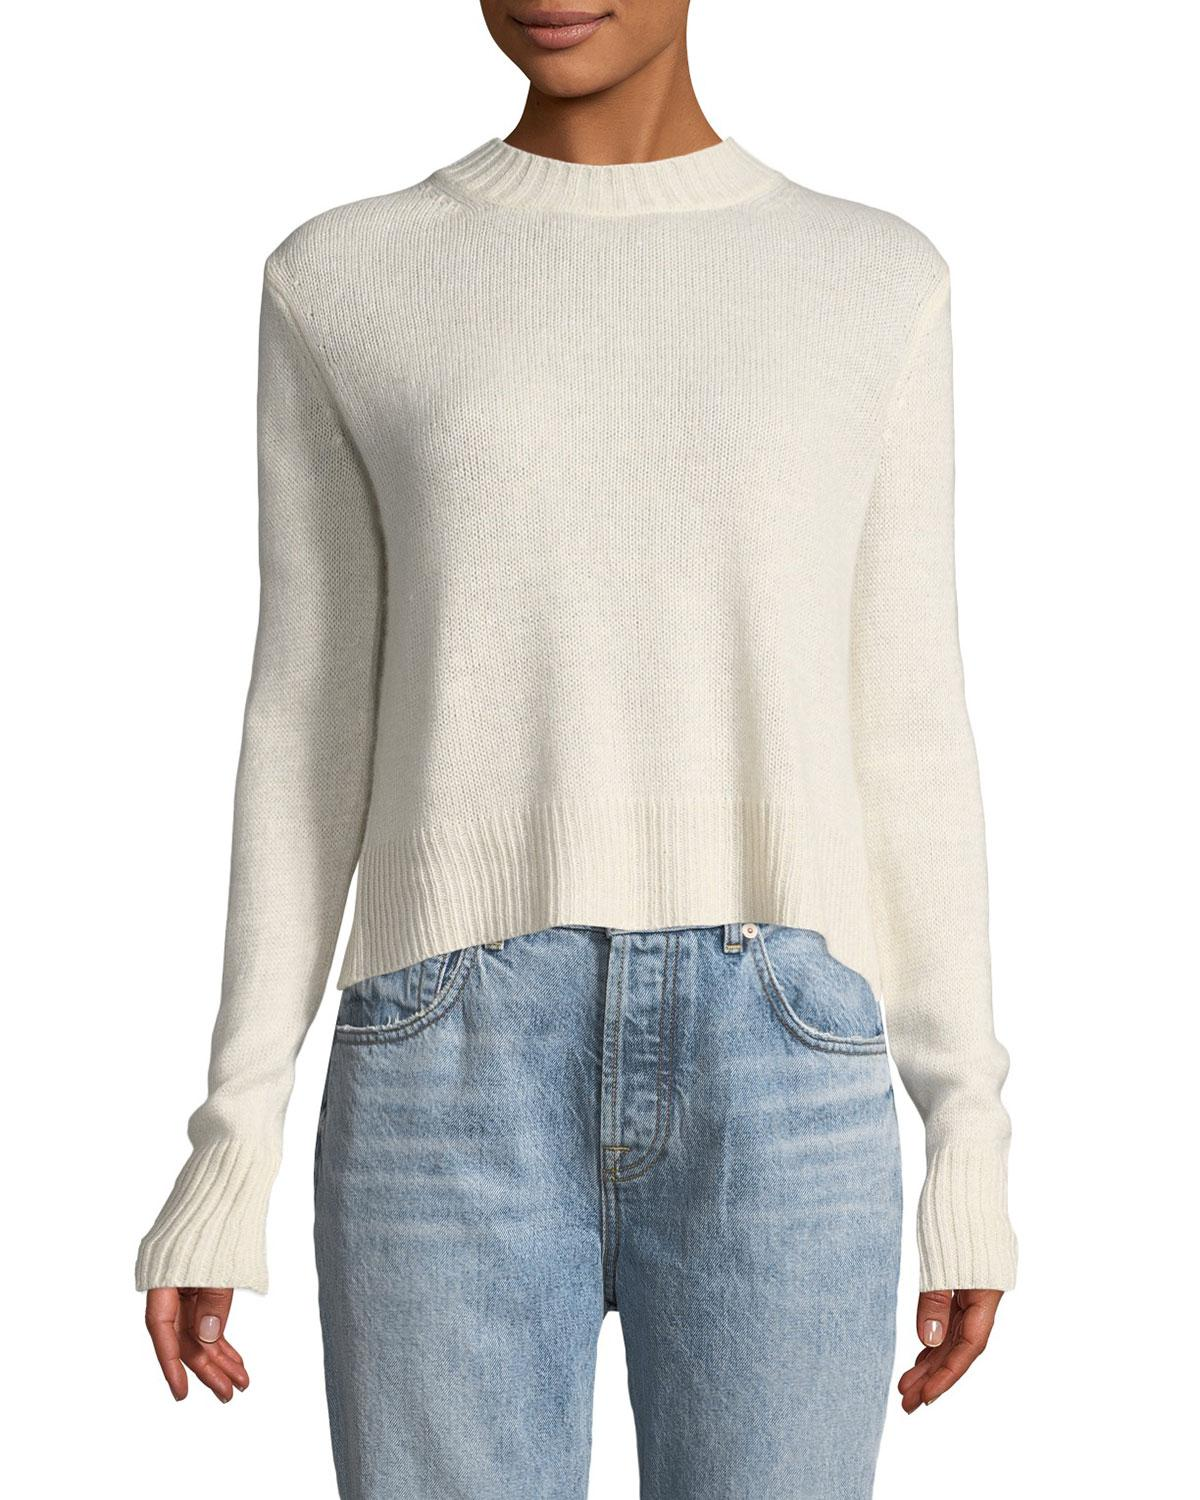 Lyst - 10 Crosby Derek Lam Long-sleeve Pullover Sweater With Back ... c1f56c1ef